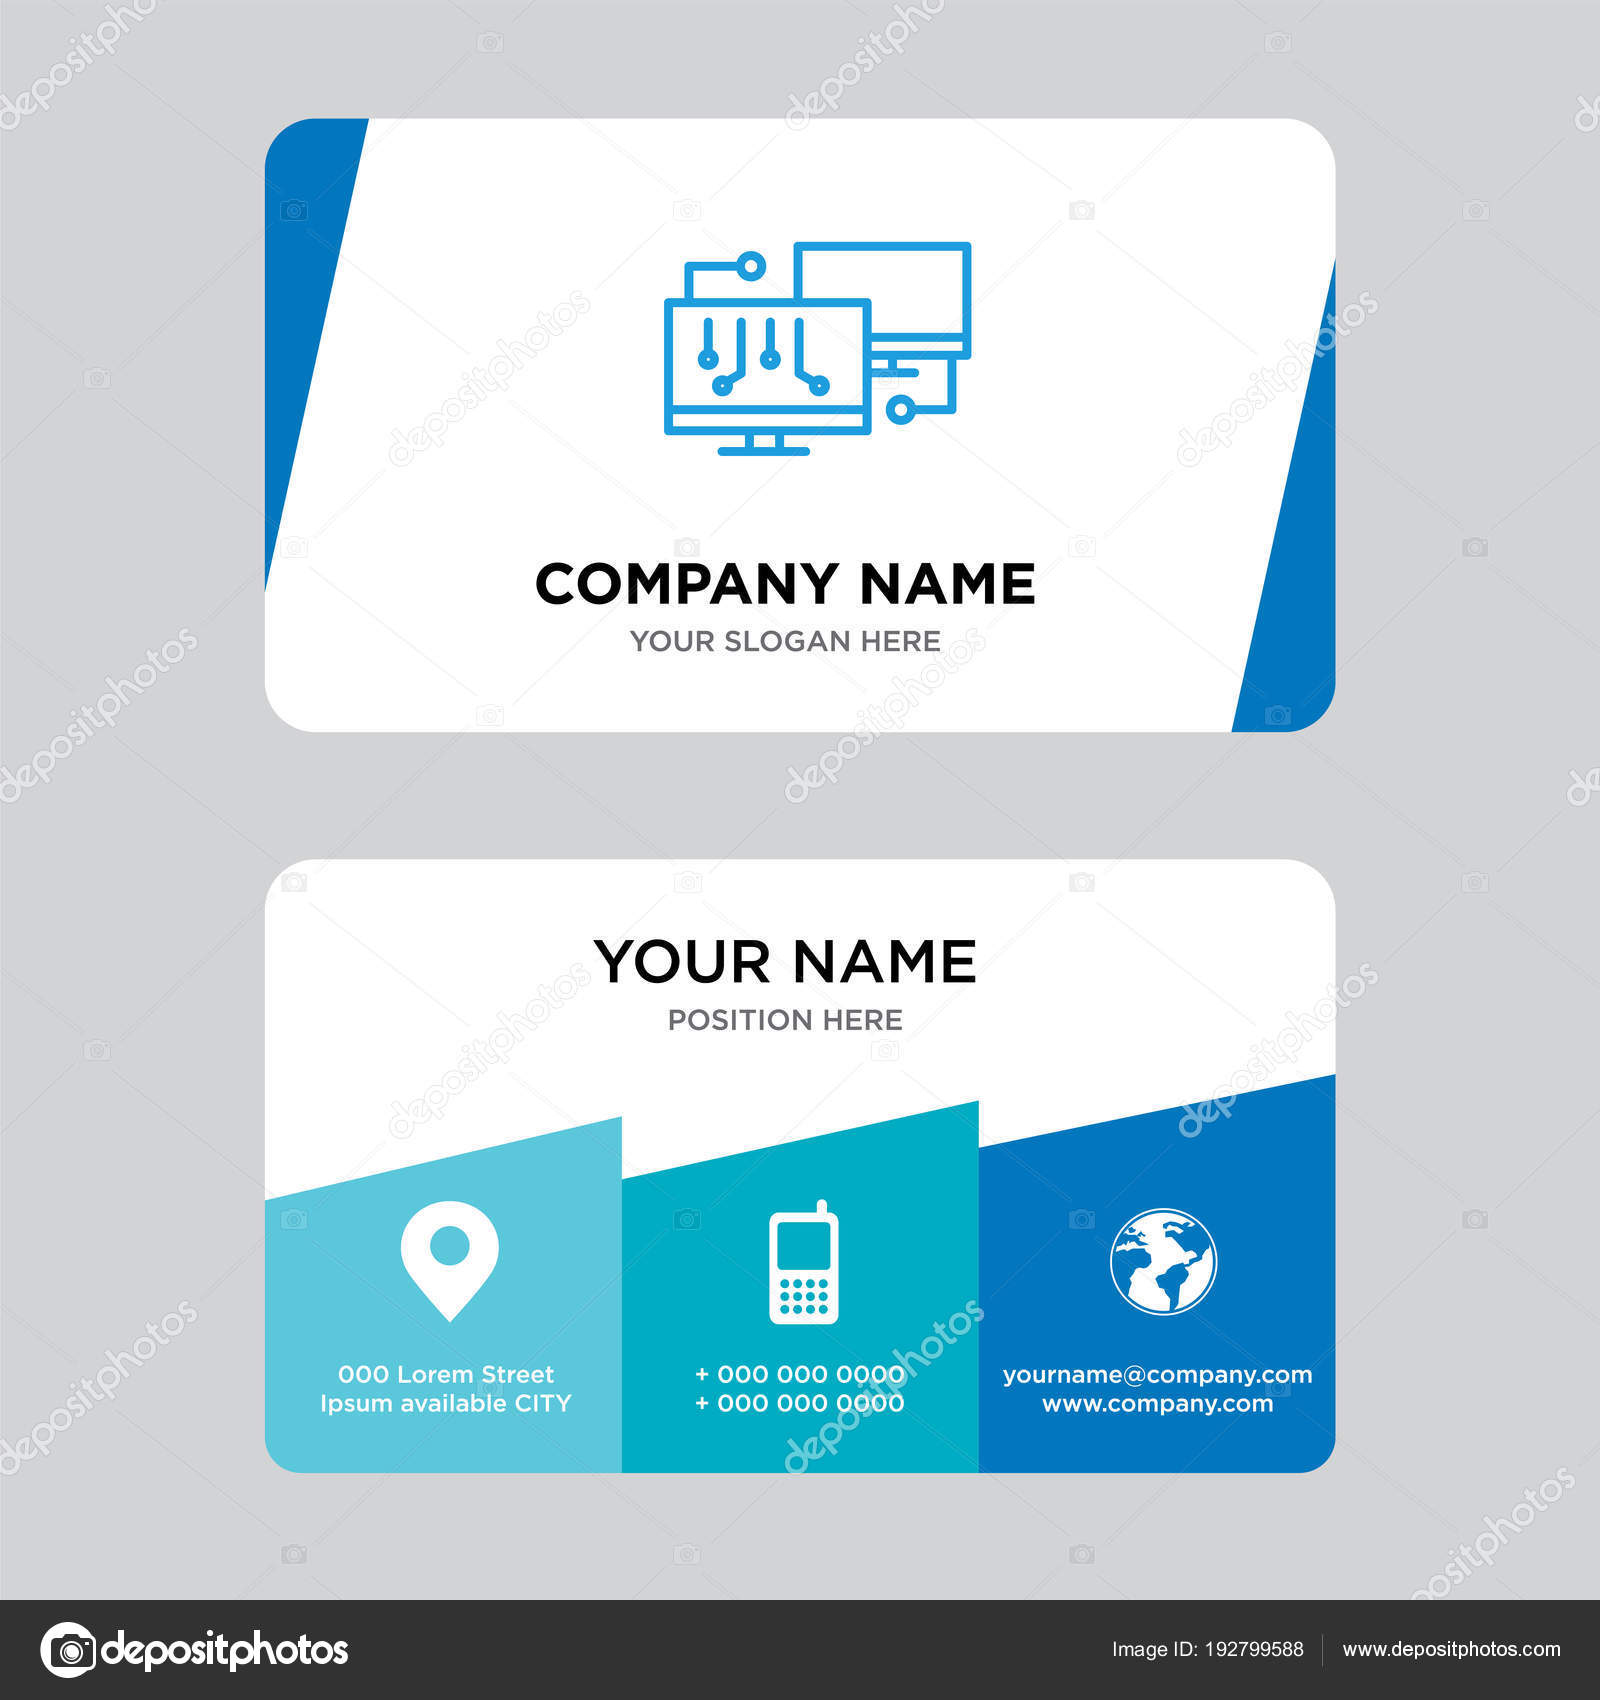 Network business card design template stock vector network business card design template stock vector friedricerecipe Gallery